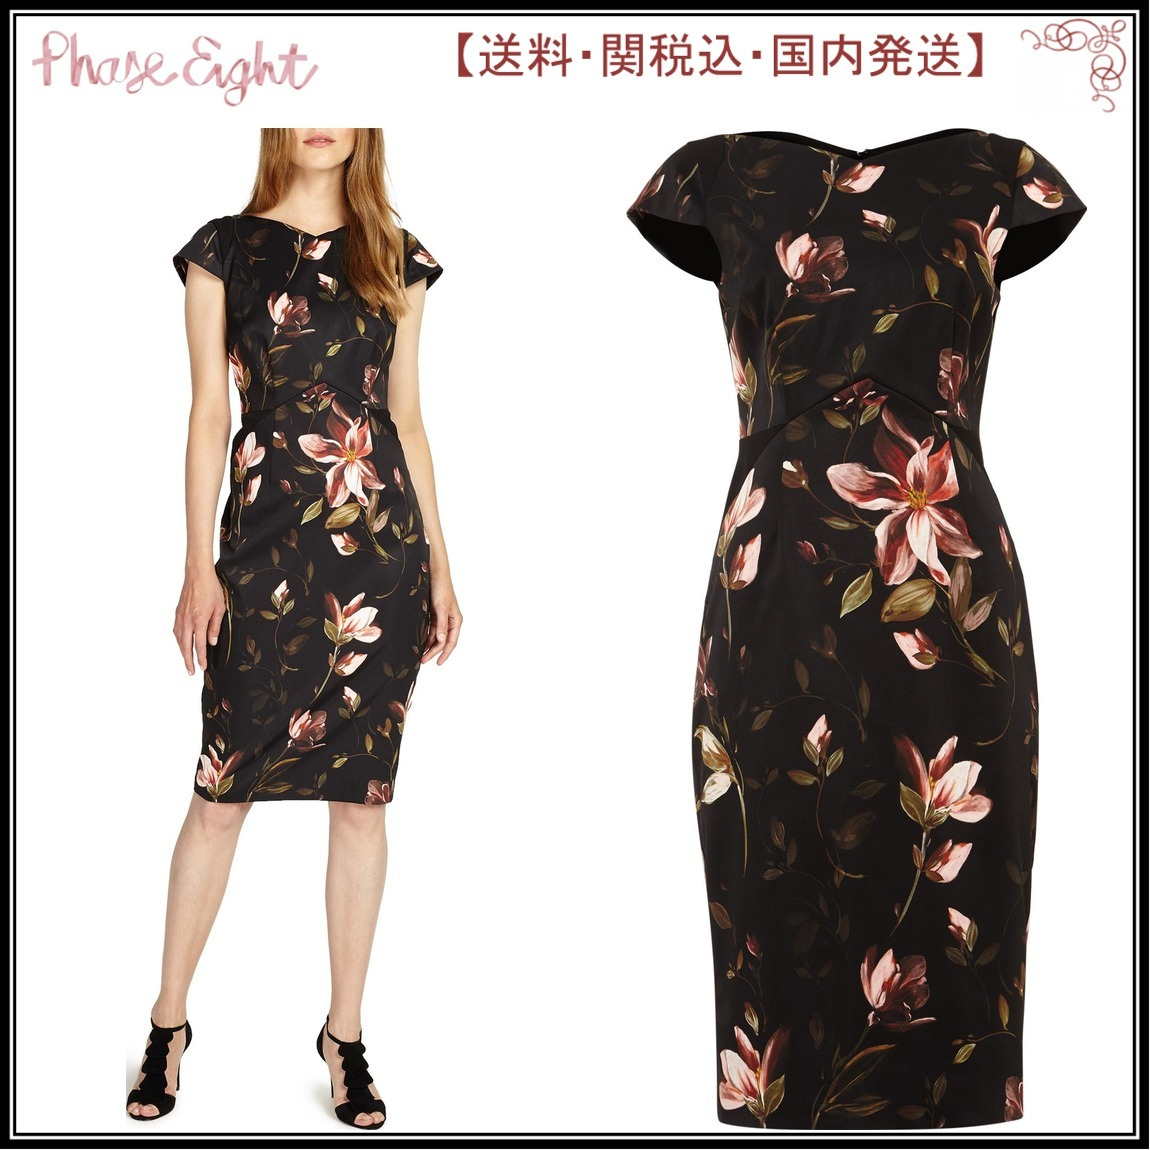 【関税込】PhaseEight ワンピース☆Kailey Print Dress